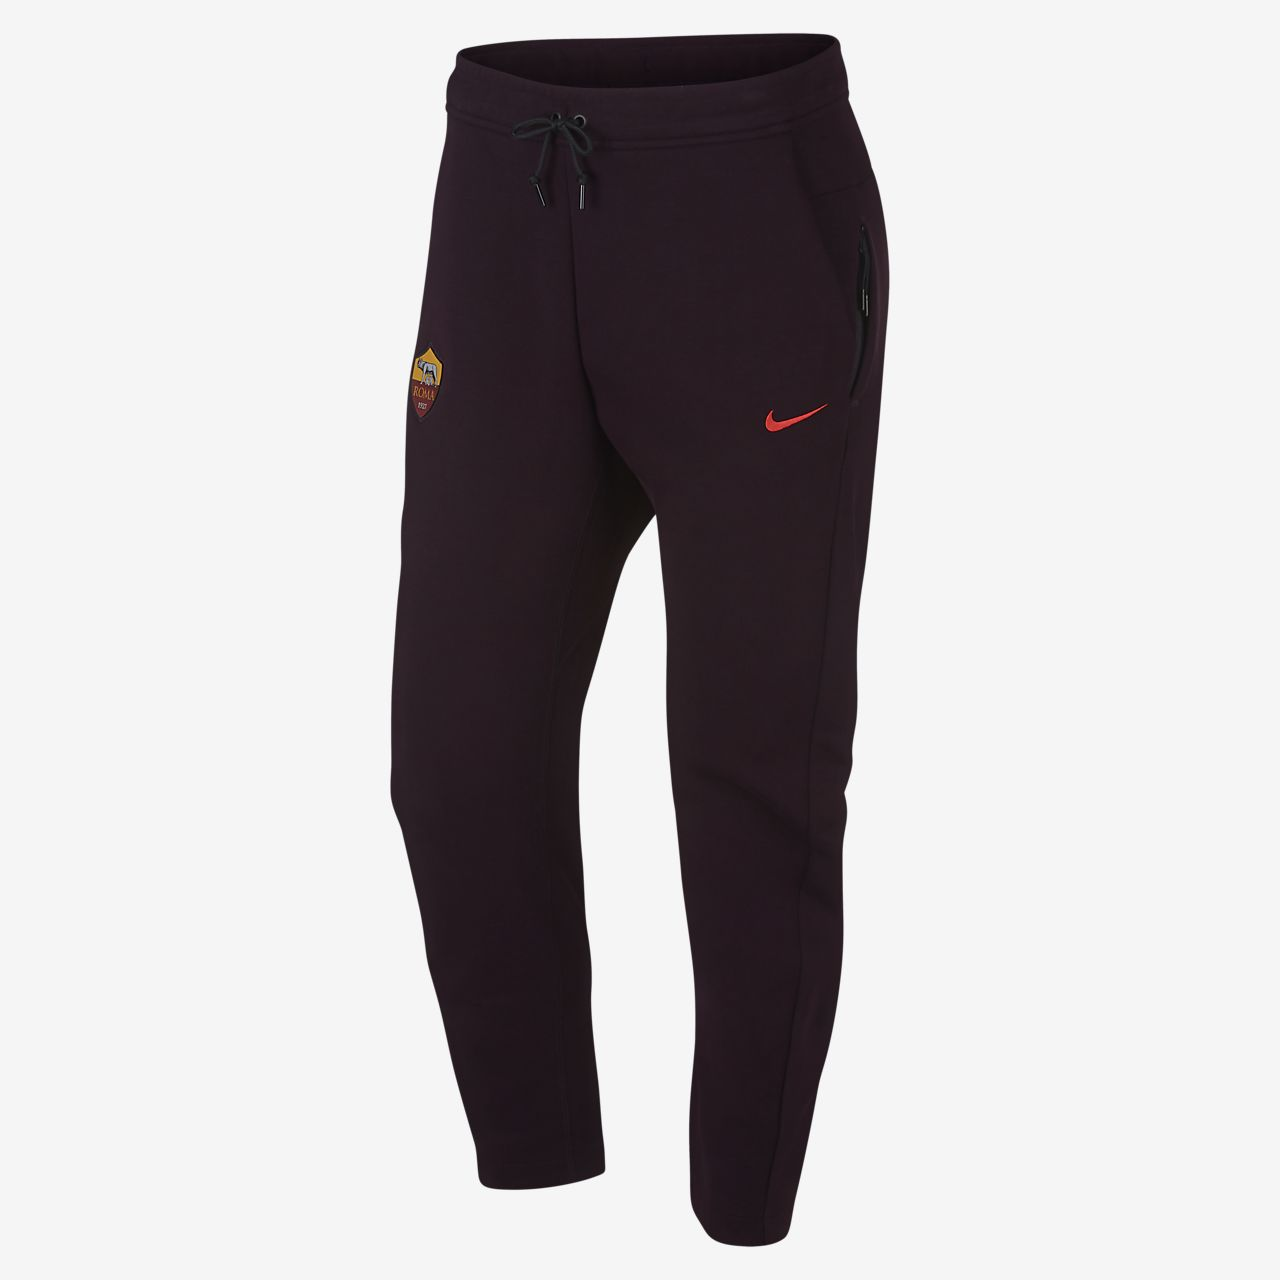 A.S. Roma Tech Fleece Men's Pants